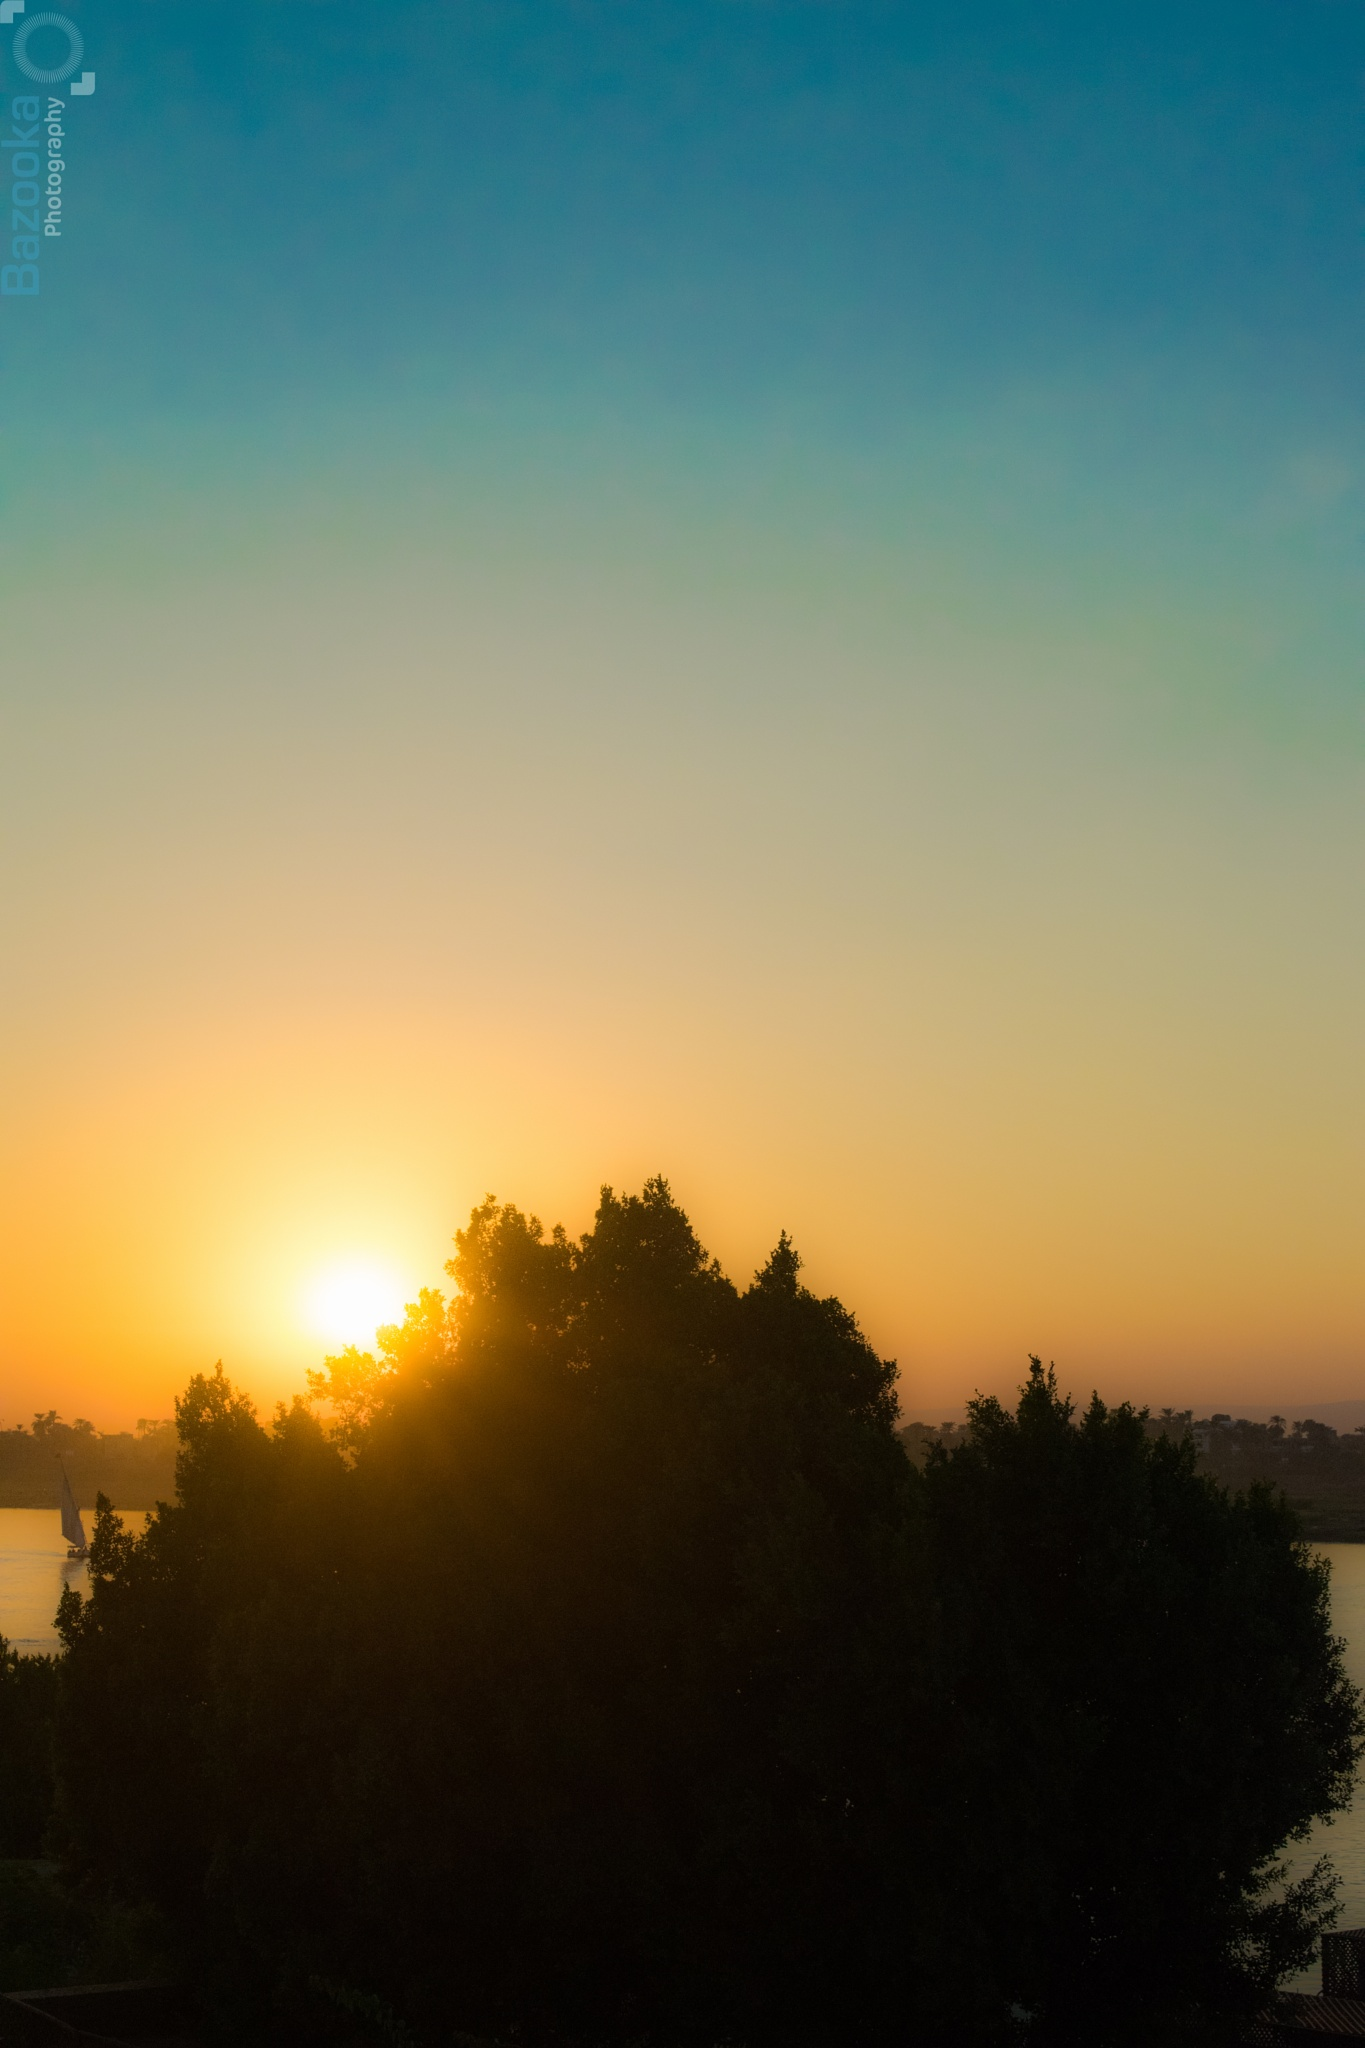 Sunset by Hassan Ahmed Ezz